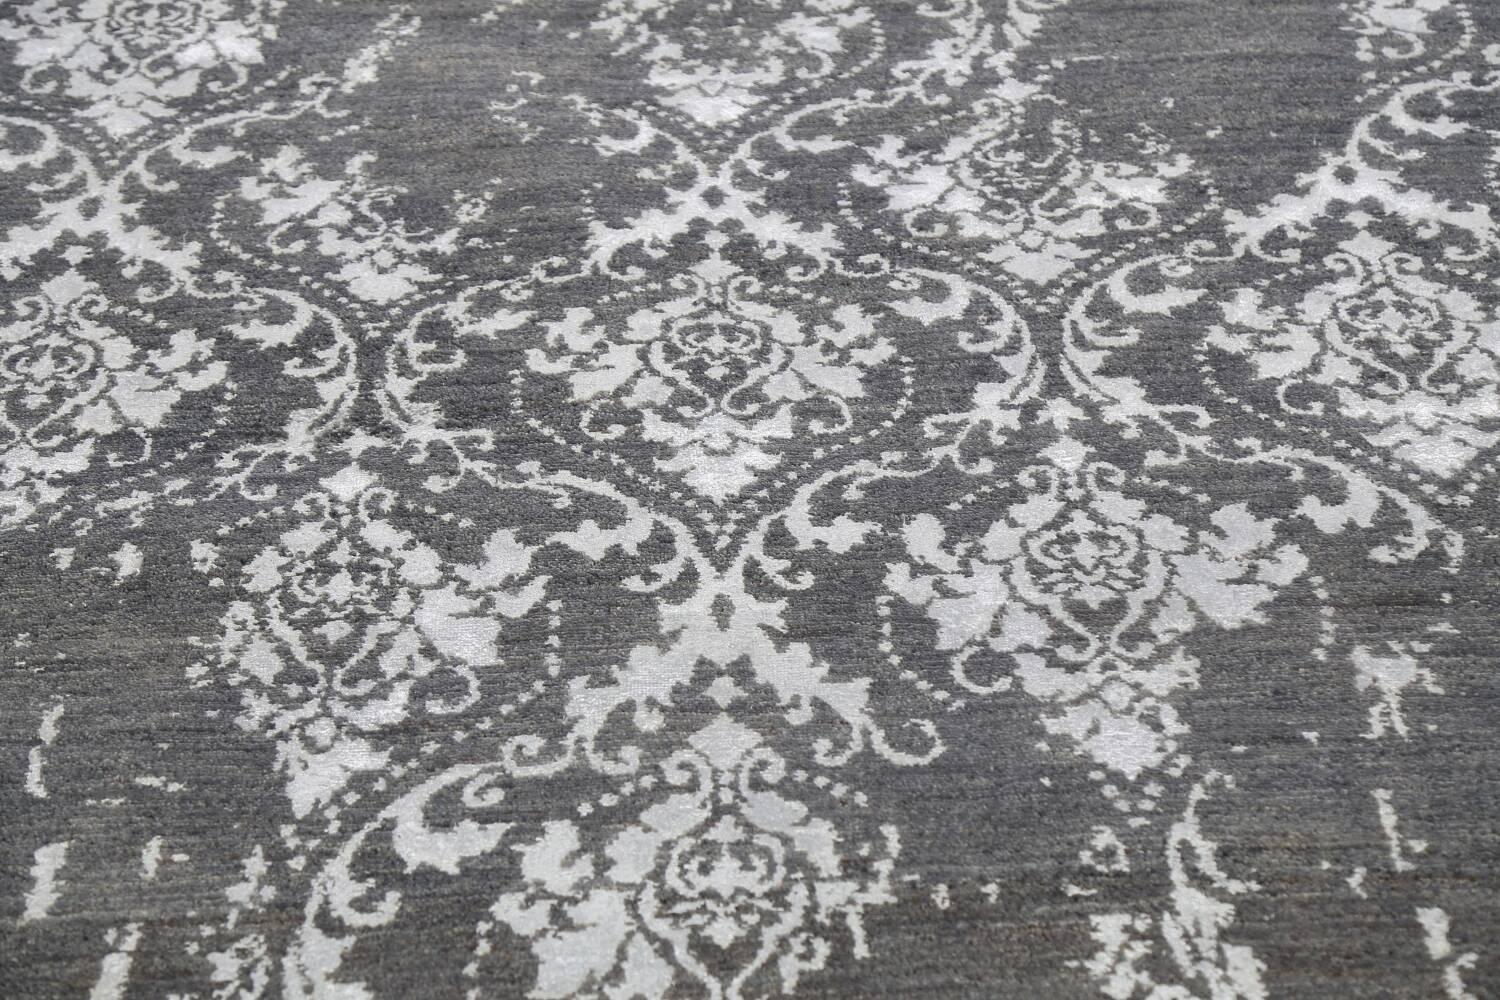 Vegetable Dye Distressed Abstract Oriental Area Rug 6x9 image 11